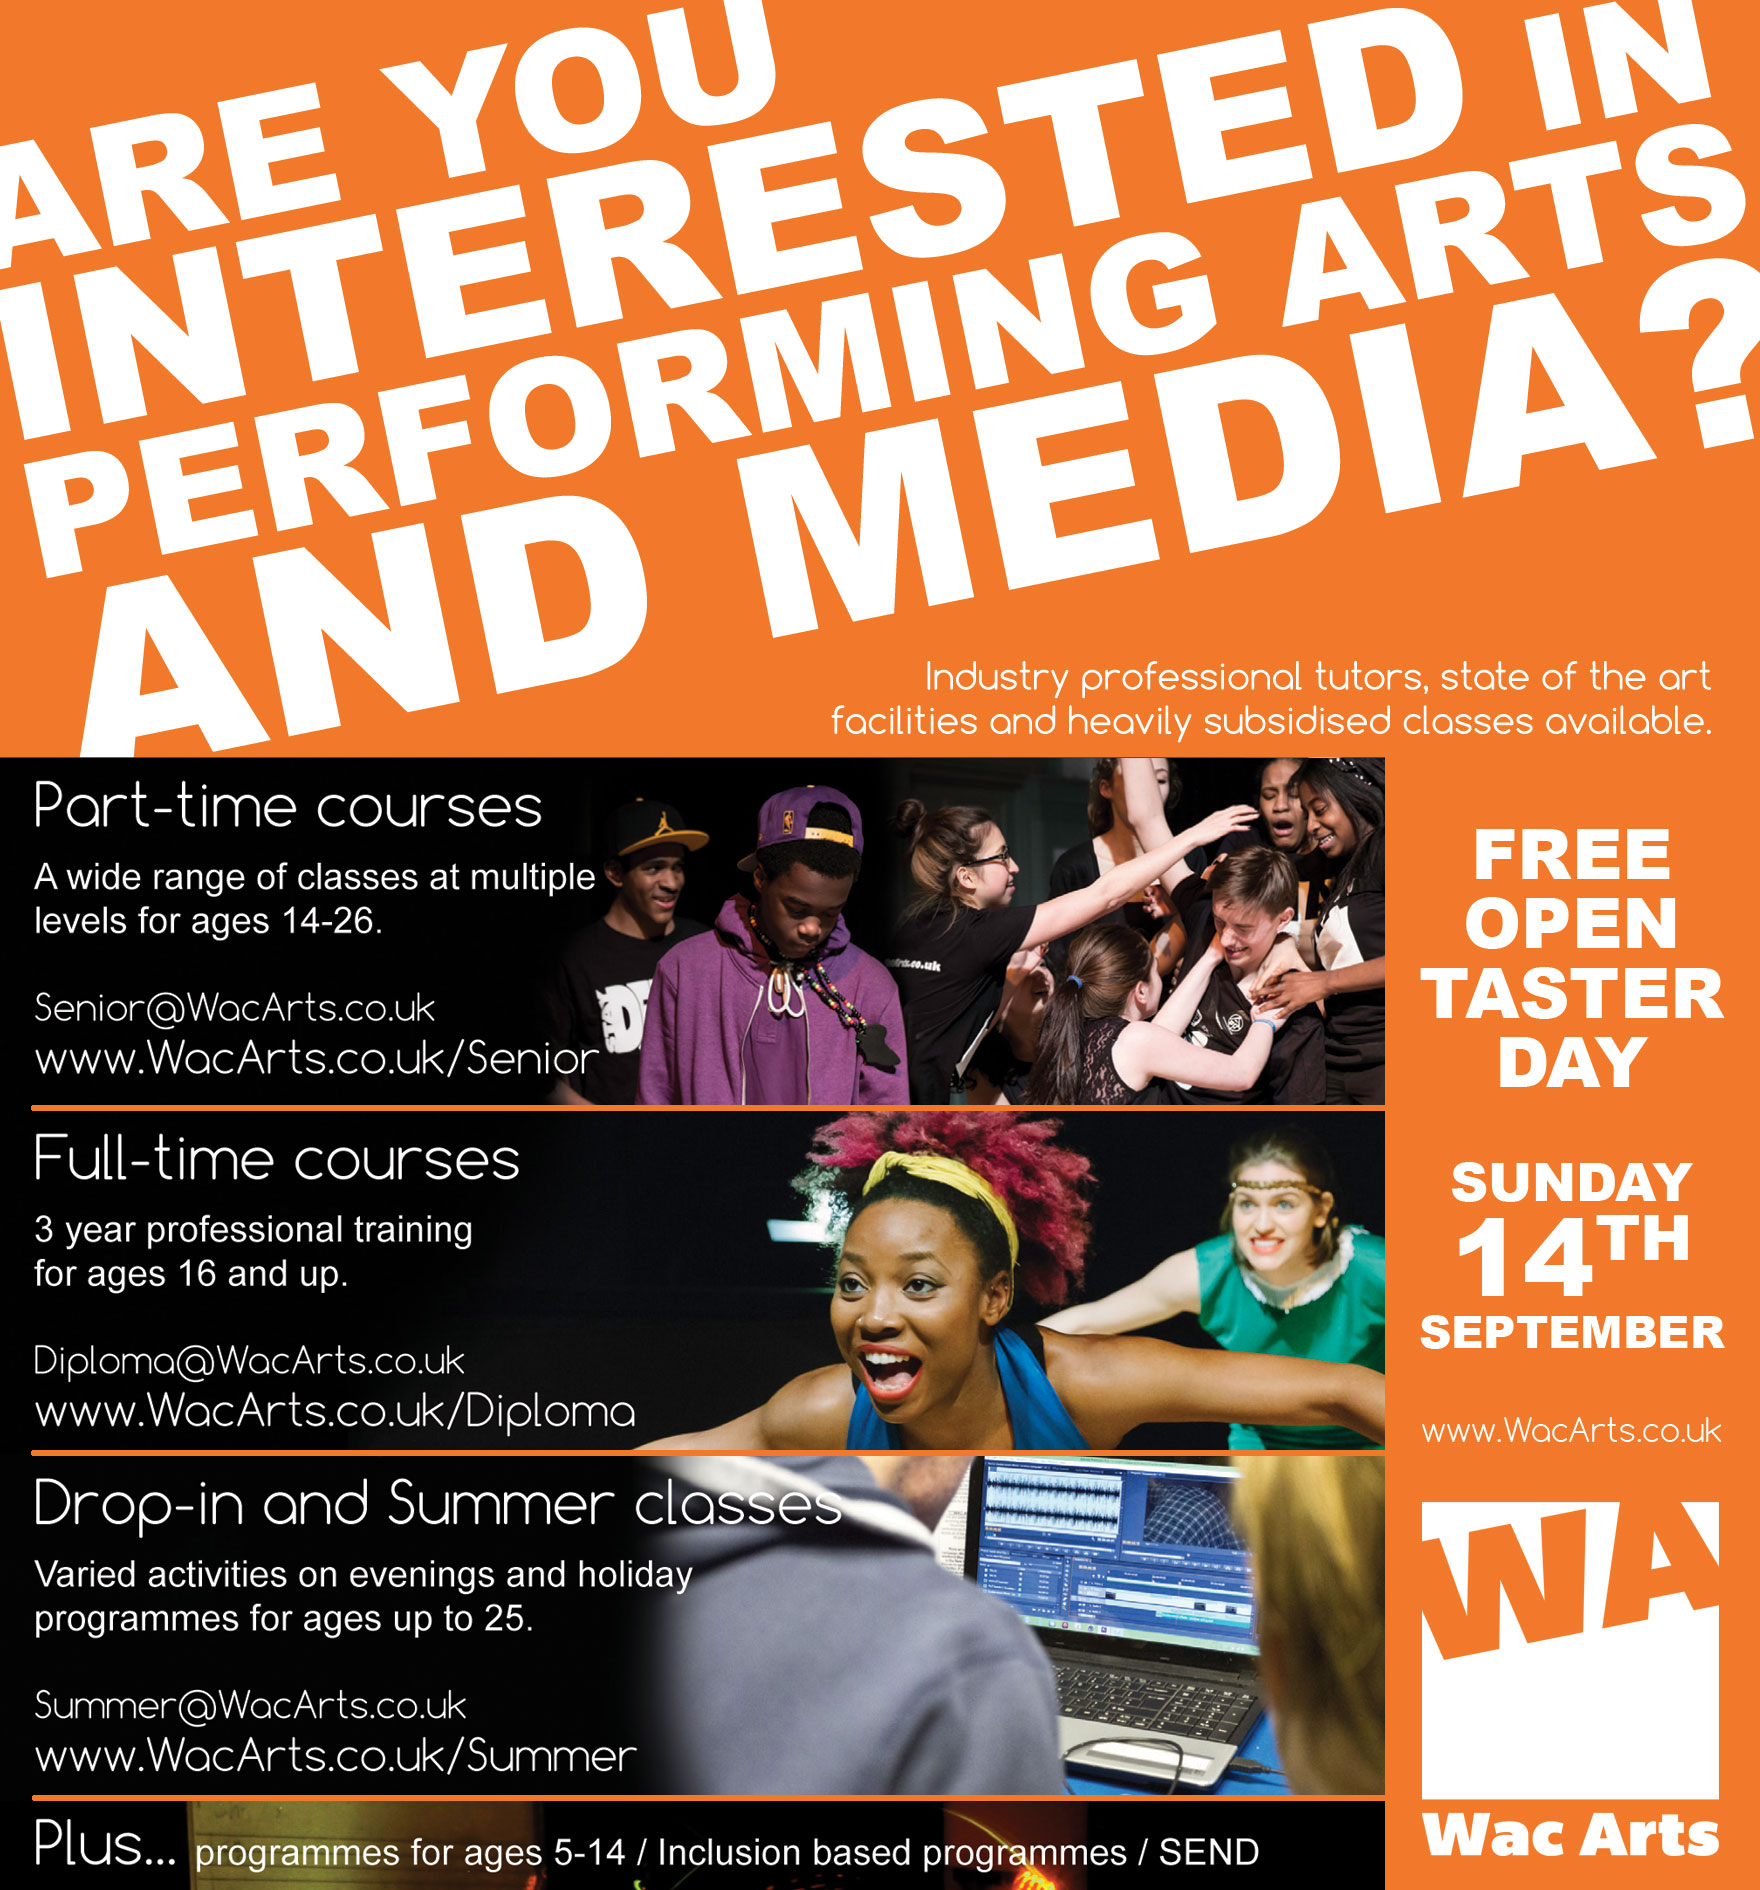 Performing-arts-and-media-ADVERT